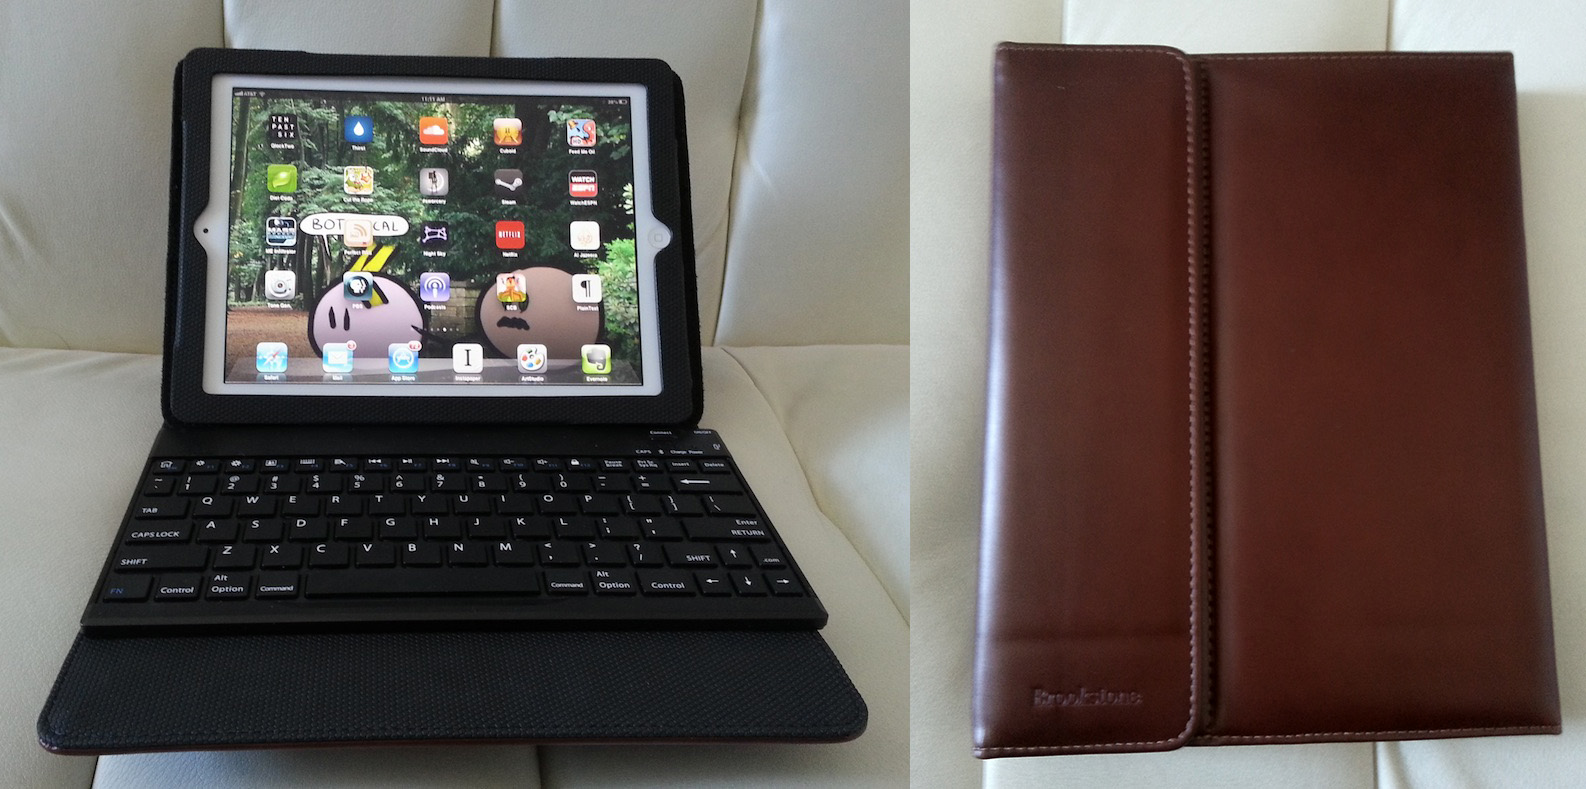 My new office set-up: got my iPad wrapped in soft, brown leather inside the Brookstone Keyboard Pro case.